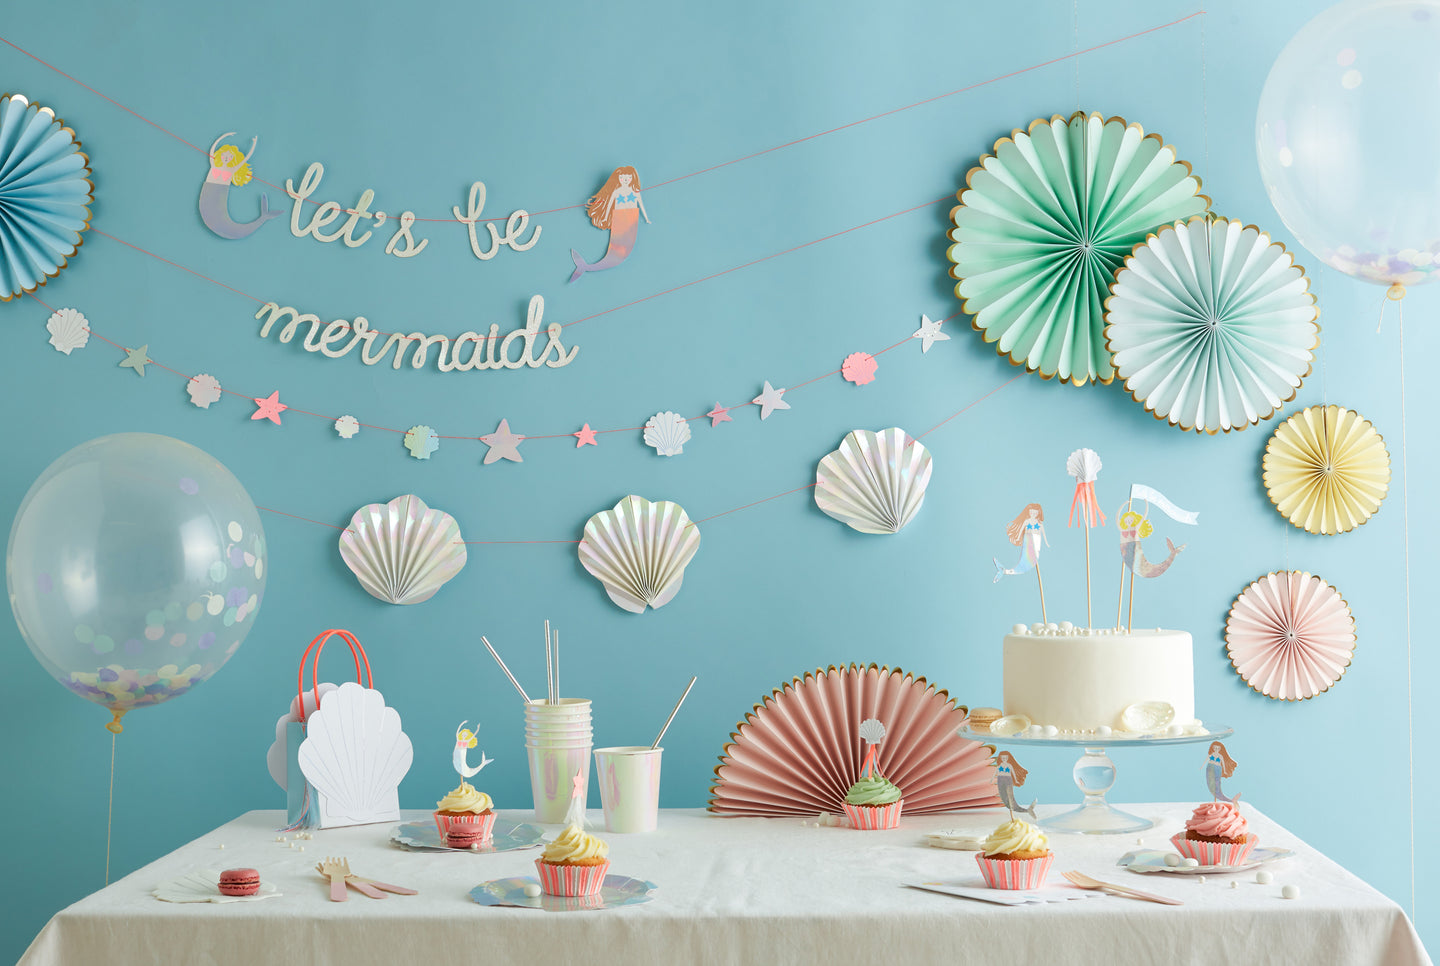 Under The Sea Party Supplies + Decorations